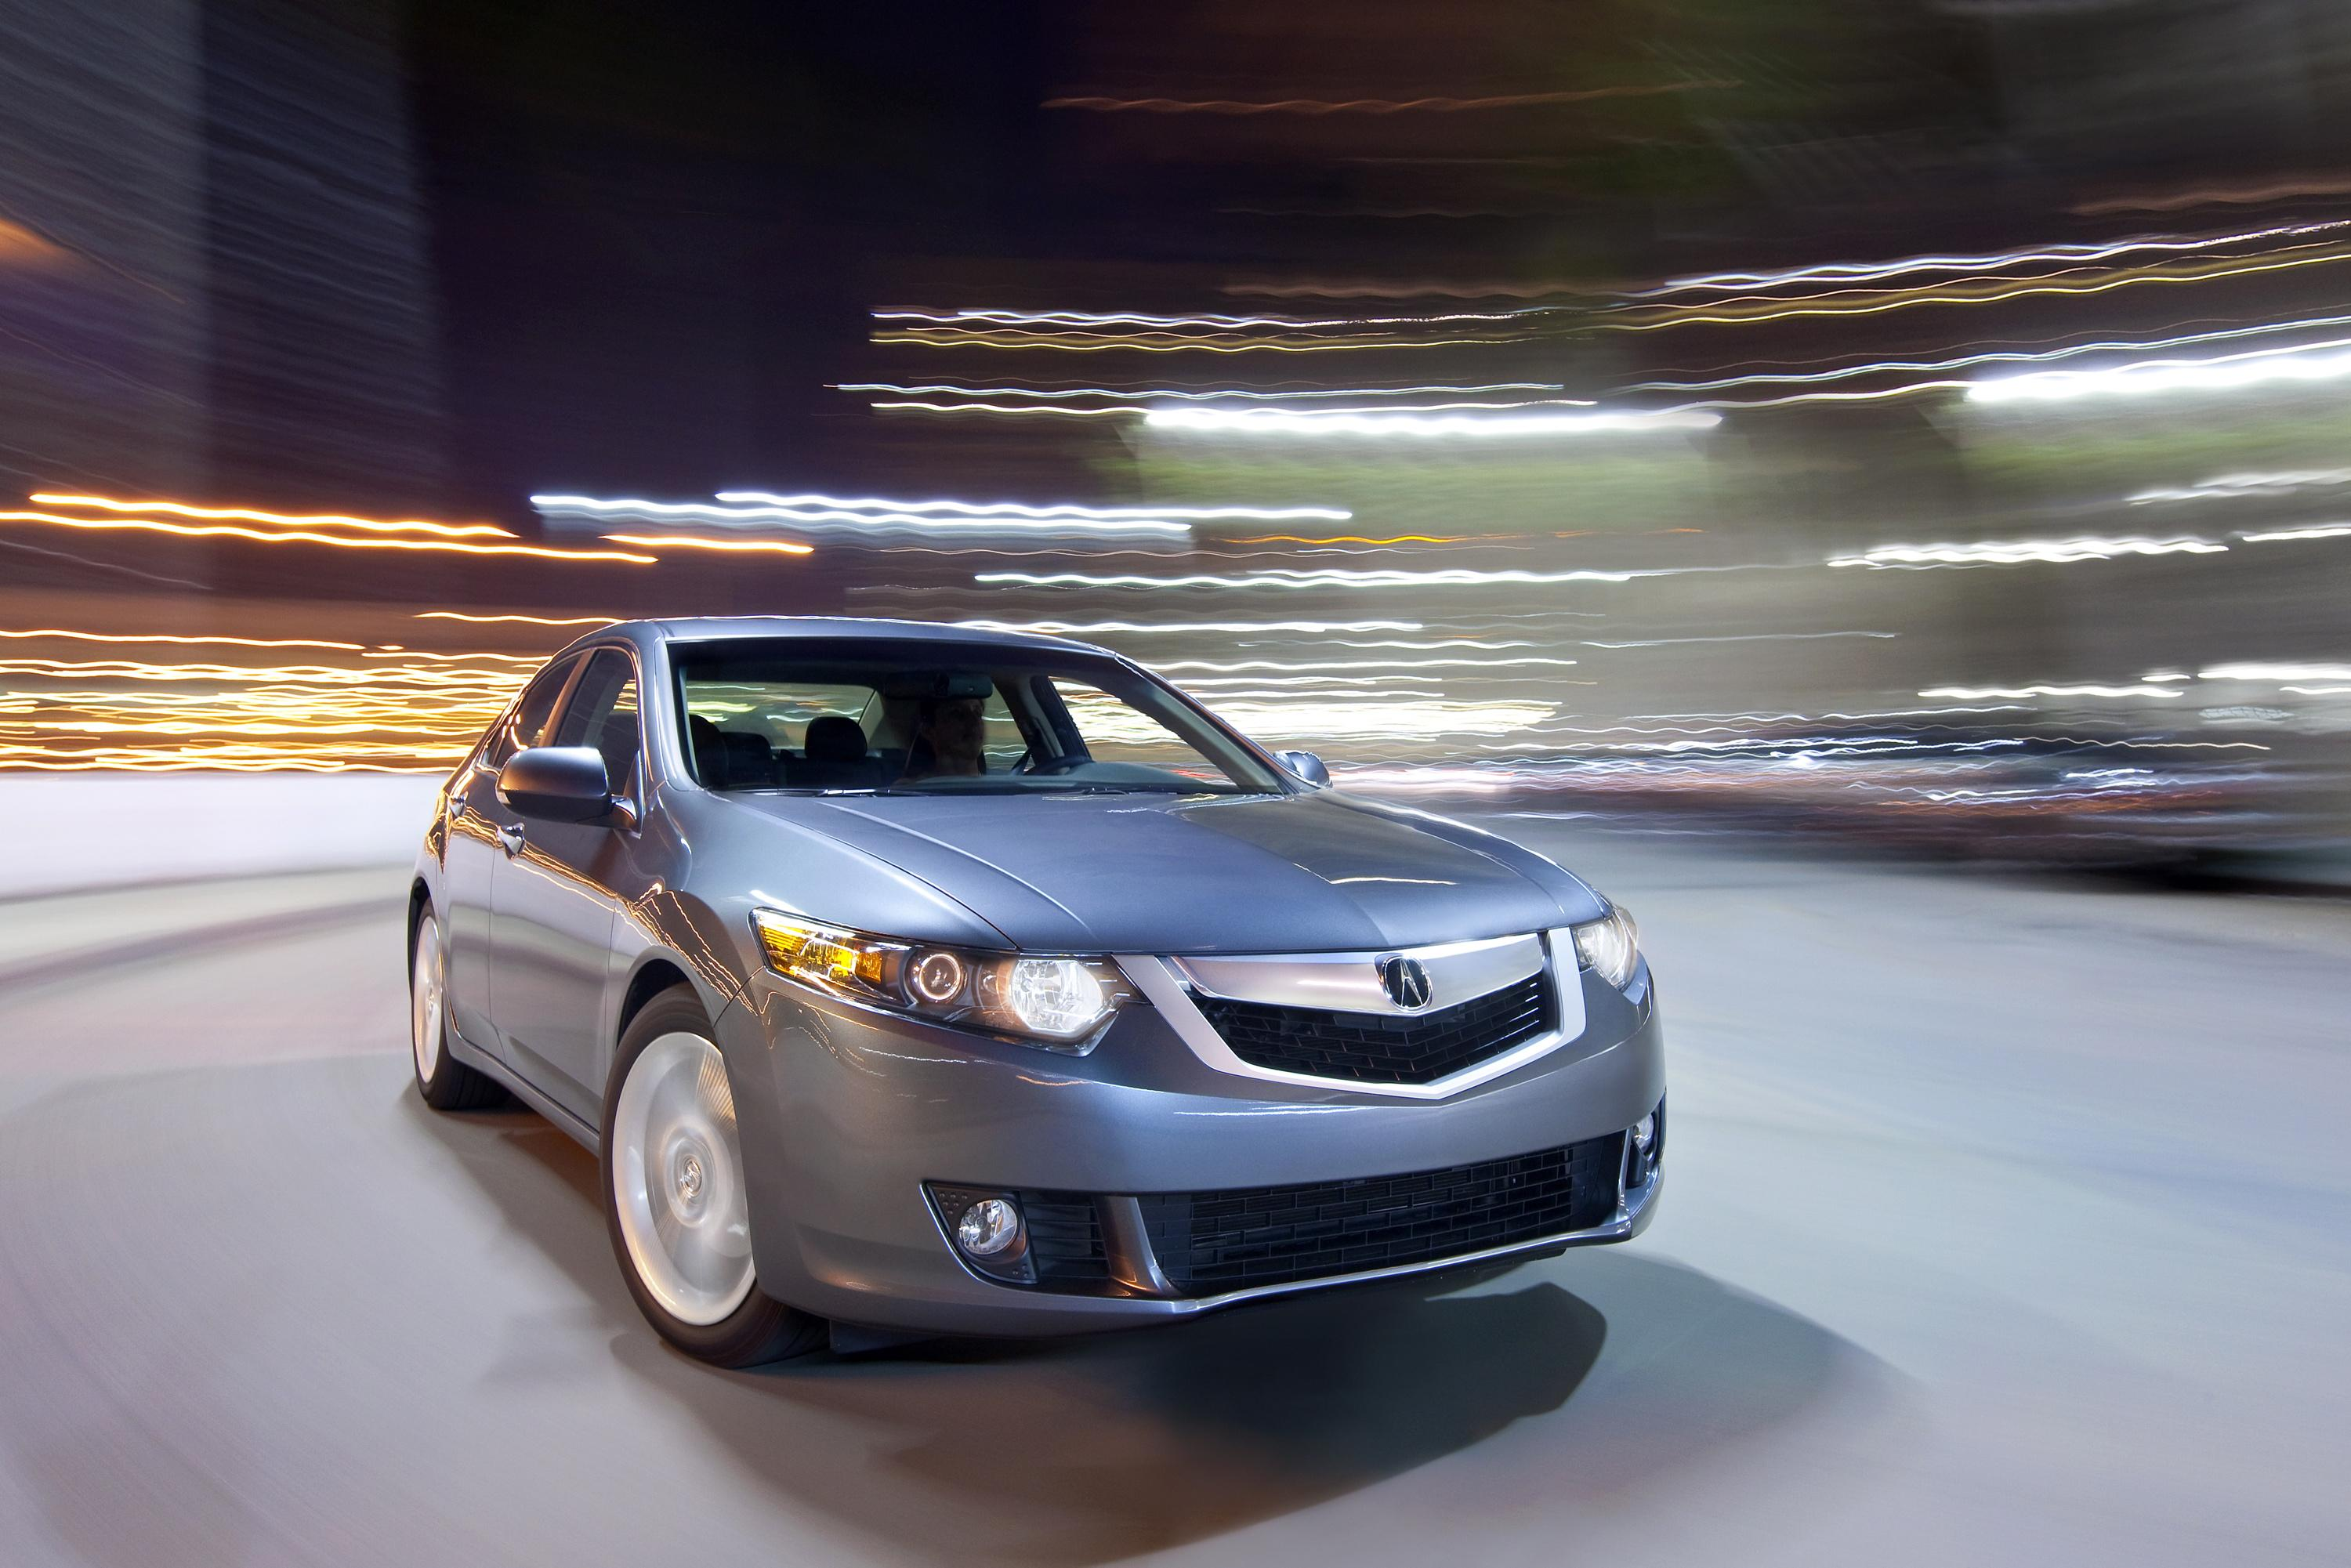 2010 Acura TSX V6 Review - Top Speed